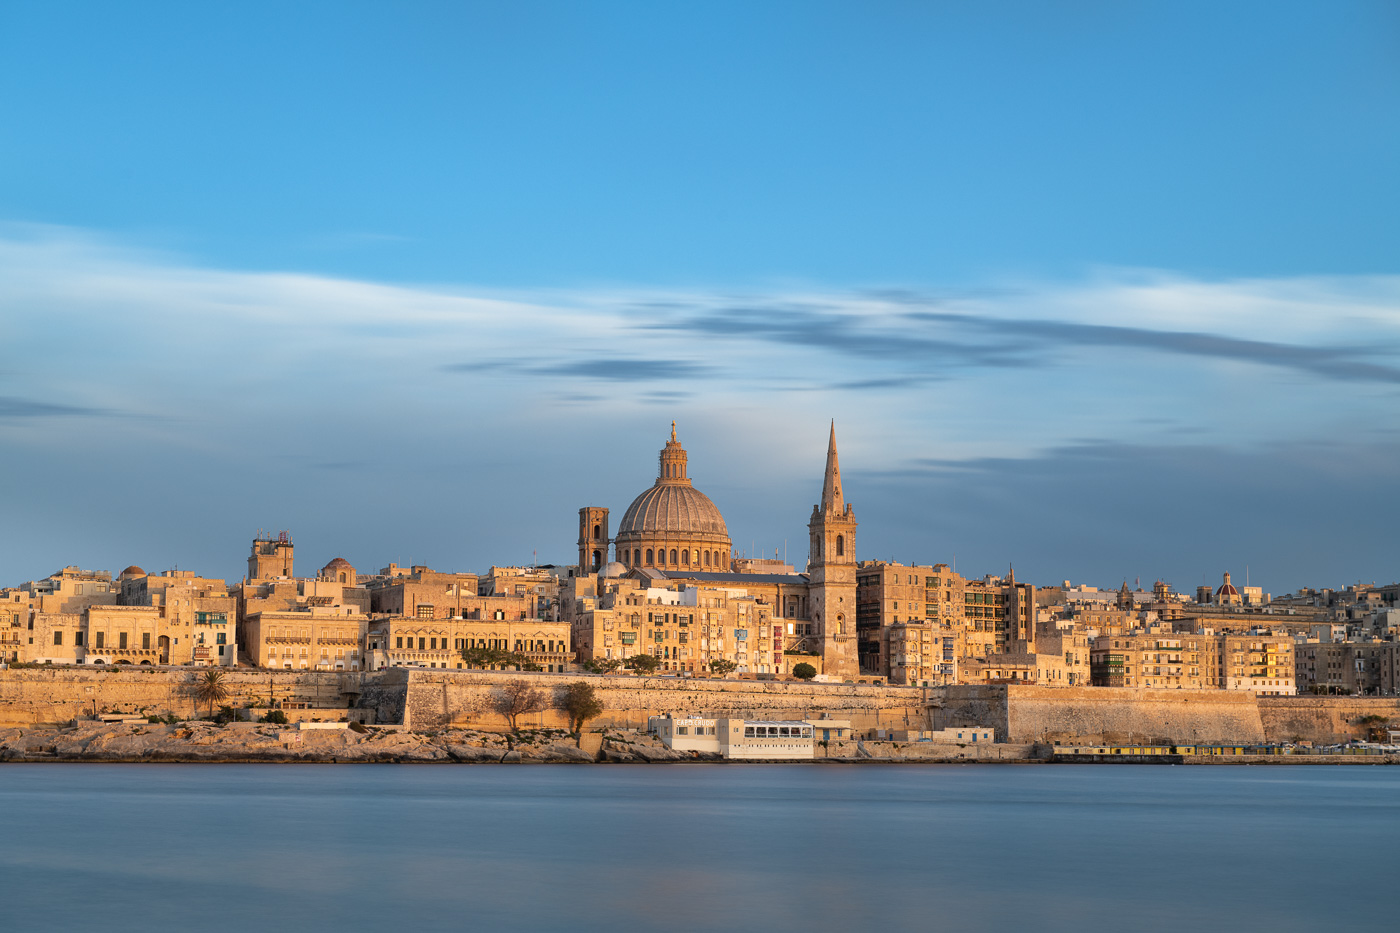 Arriving to Valletta by ferry from Sliena